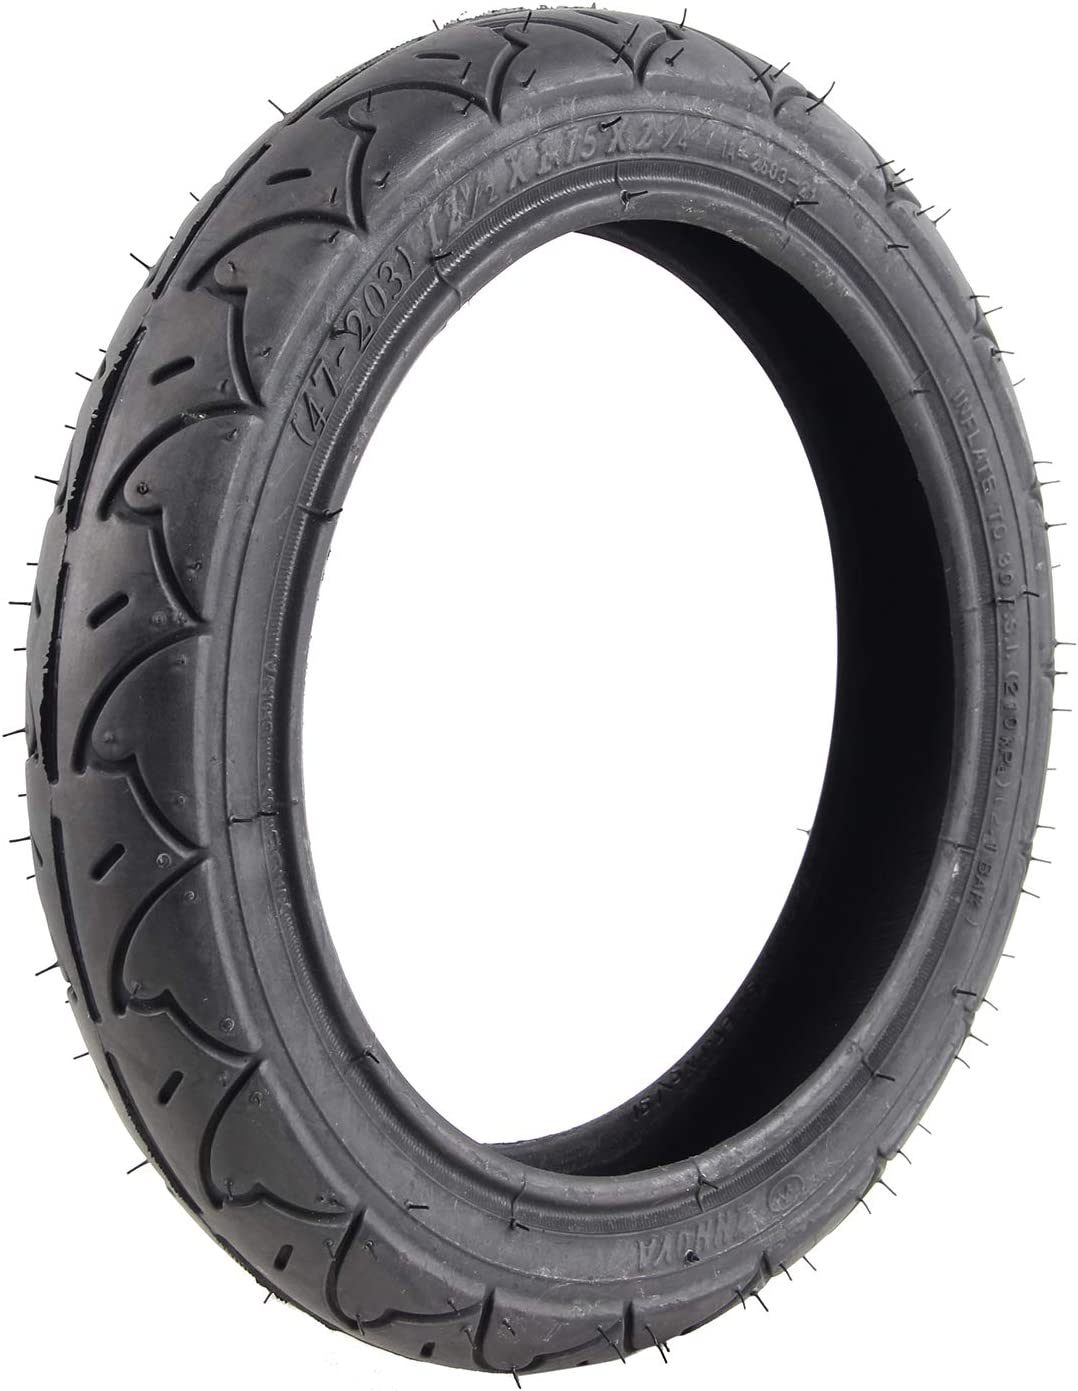 1PC 12-1/2 x 1.75 x 2-1/4 Tire Replacements of Joovy Zoom/BOB Revolution Flex/PRO/SE Jogging Stroller/Baby Trend Expedition/Xcel/Range/Stealth Jogging Stroller/Graco Jogger Strollers